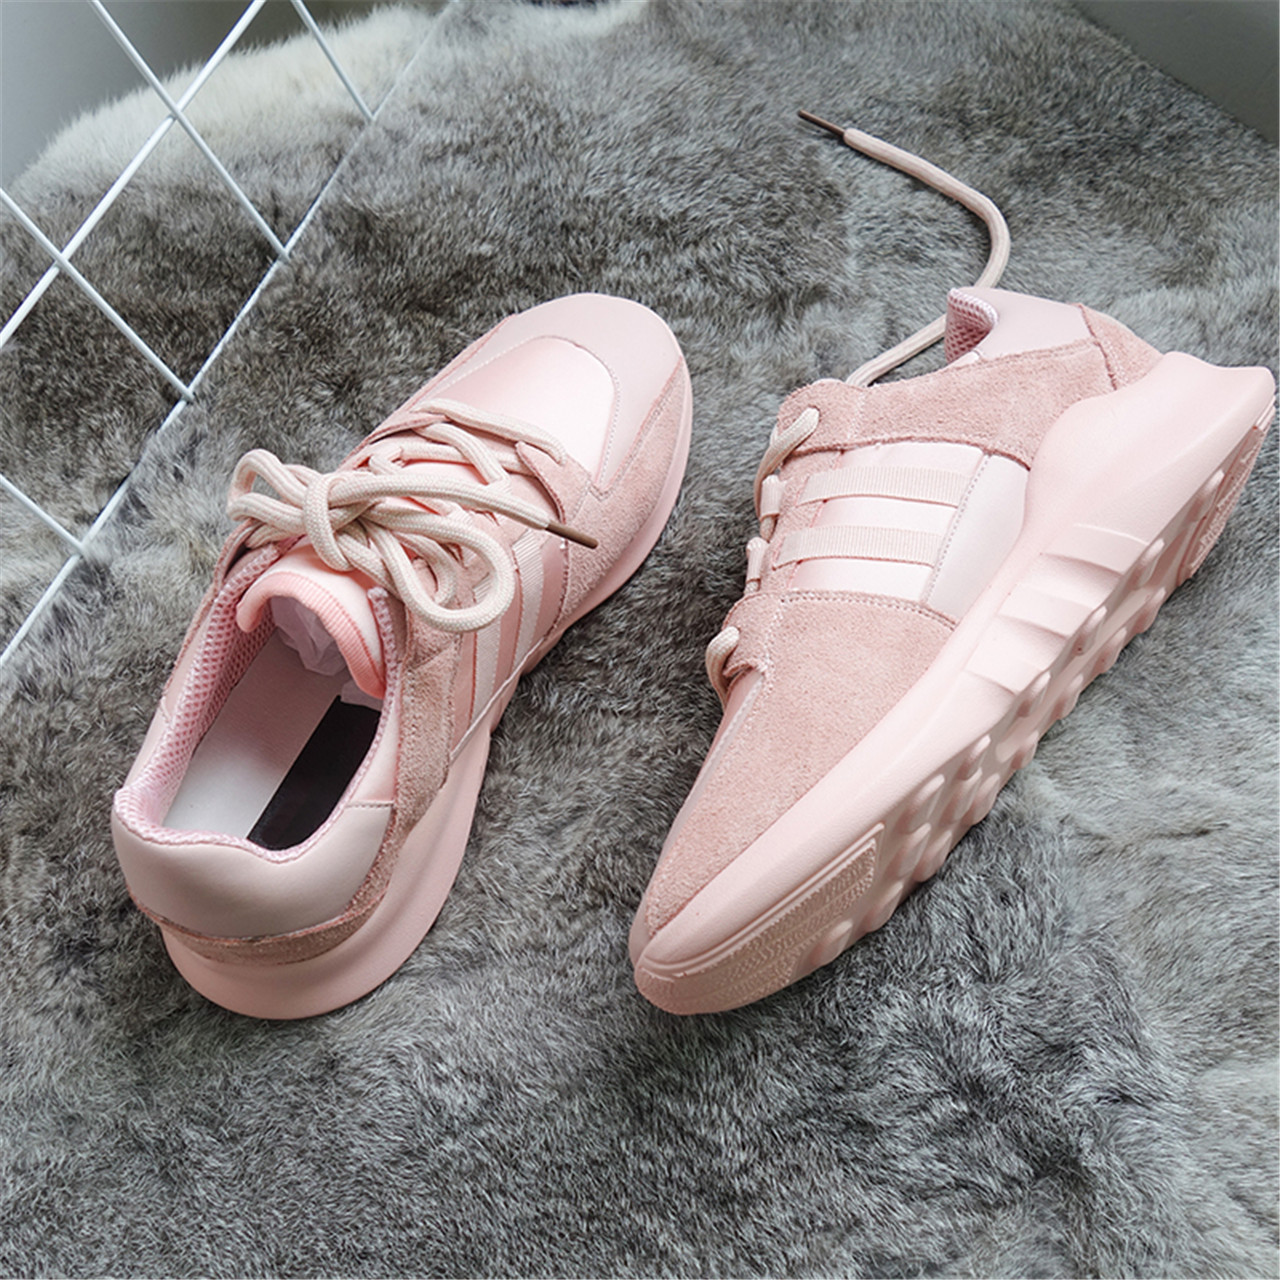 24584083d537 D leather shoes female autumn Korean ulzzang running shoes Harajuku pink  student casual shoes